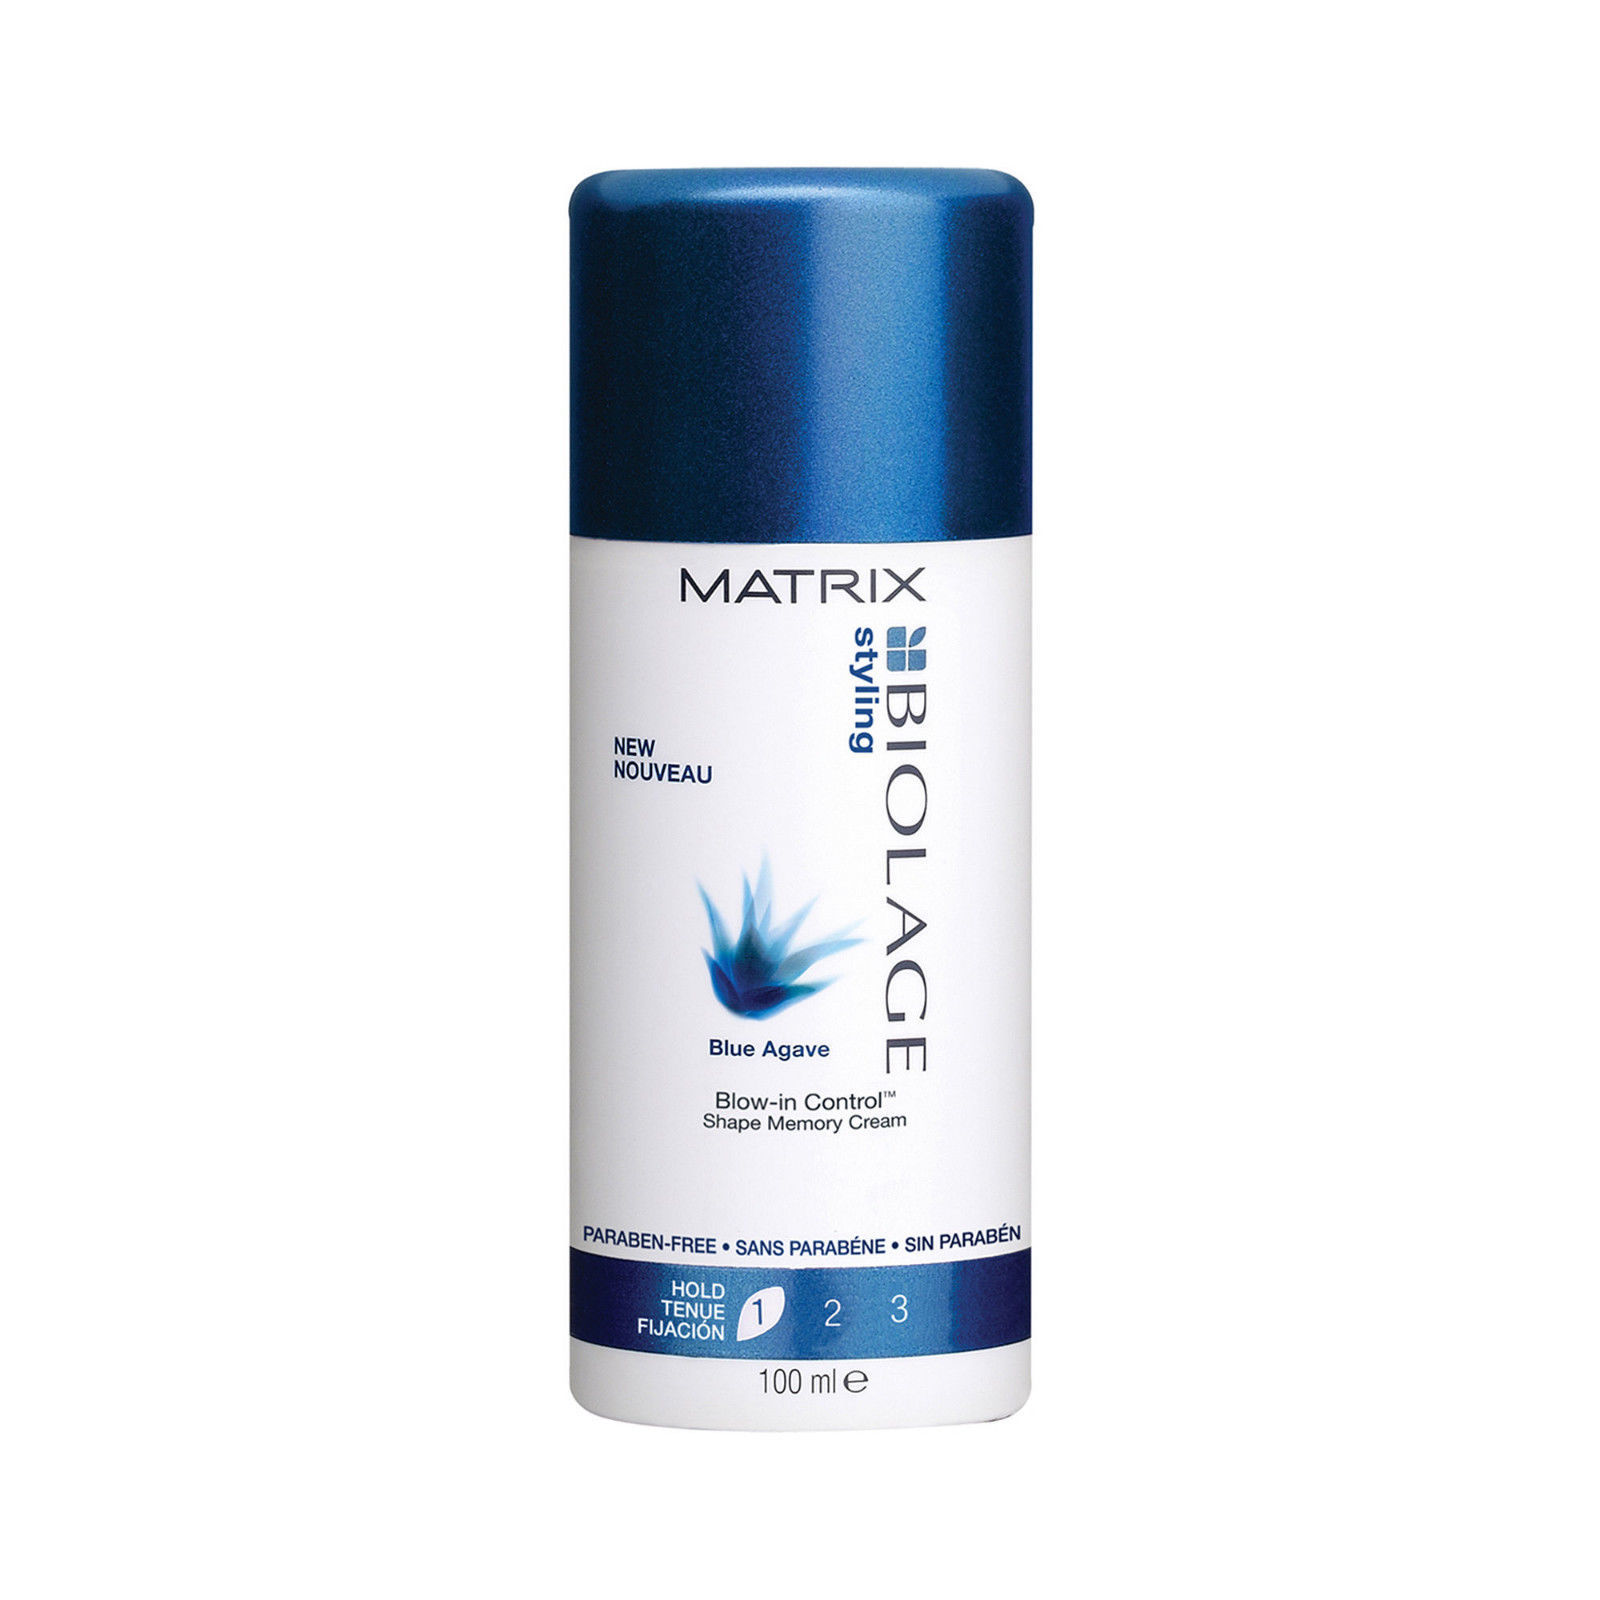 Matrix Biolage Blue Agave BLOW IN CONTROL SHAPE MEMORY CREAM 3.4 OZ